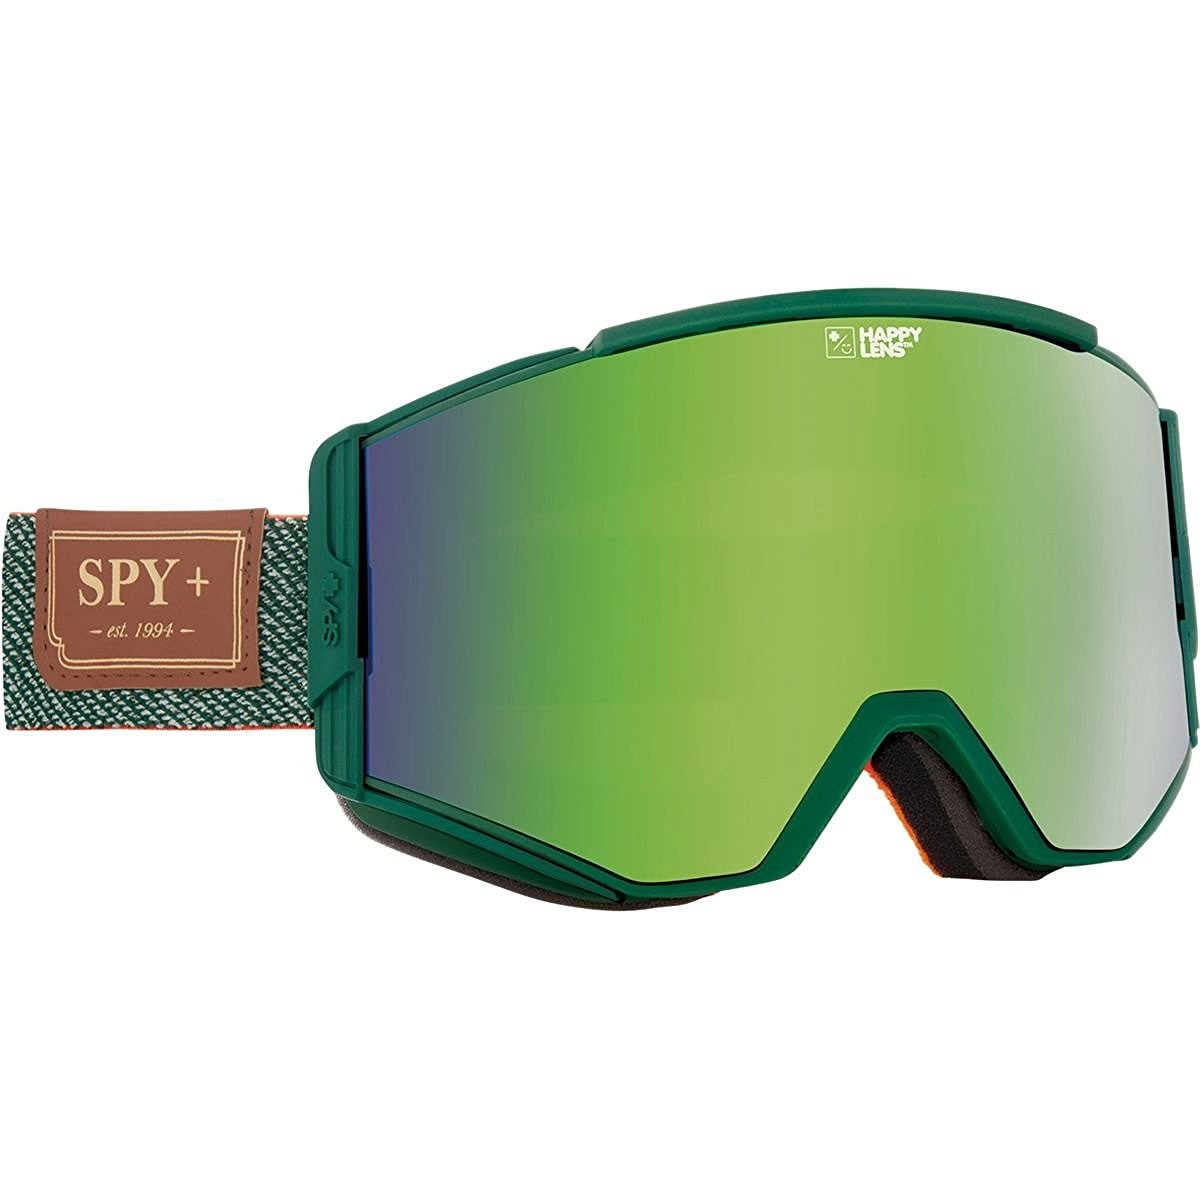 Spy Ace Snowboard Goggles - Hunter Green /Happy Green Spectra with Happy Lucid Silver